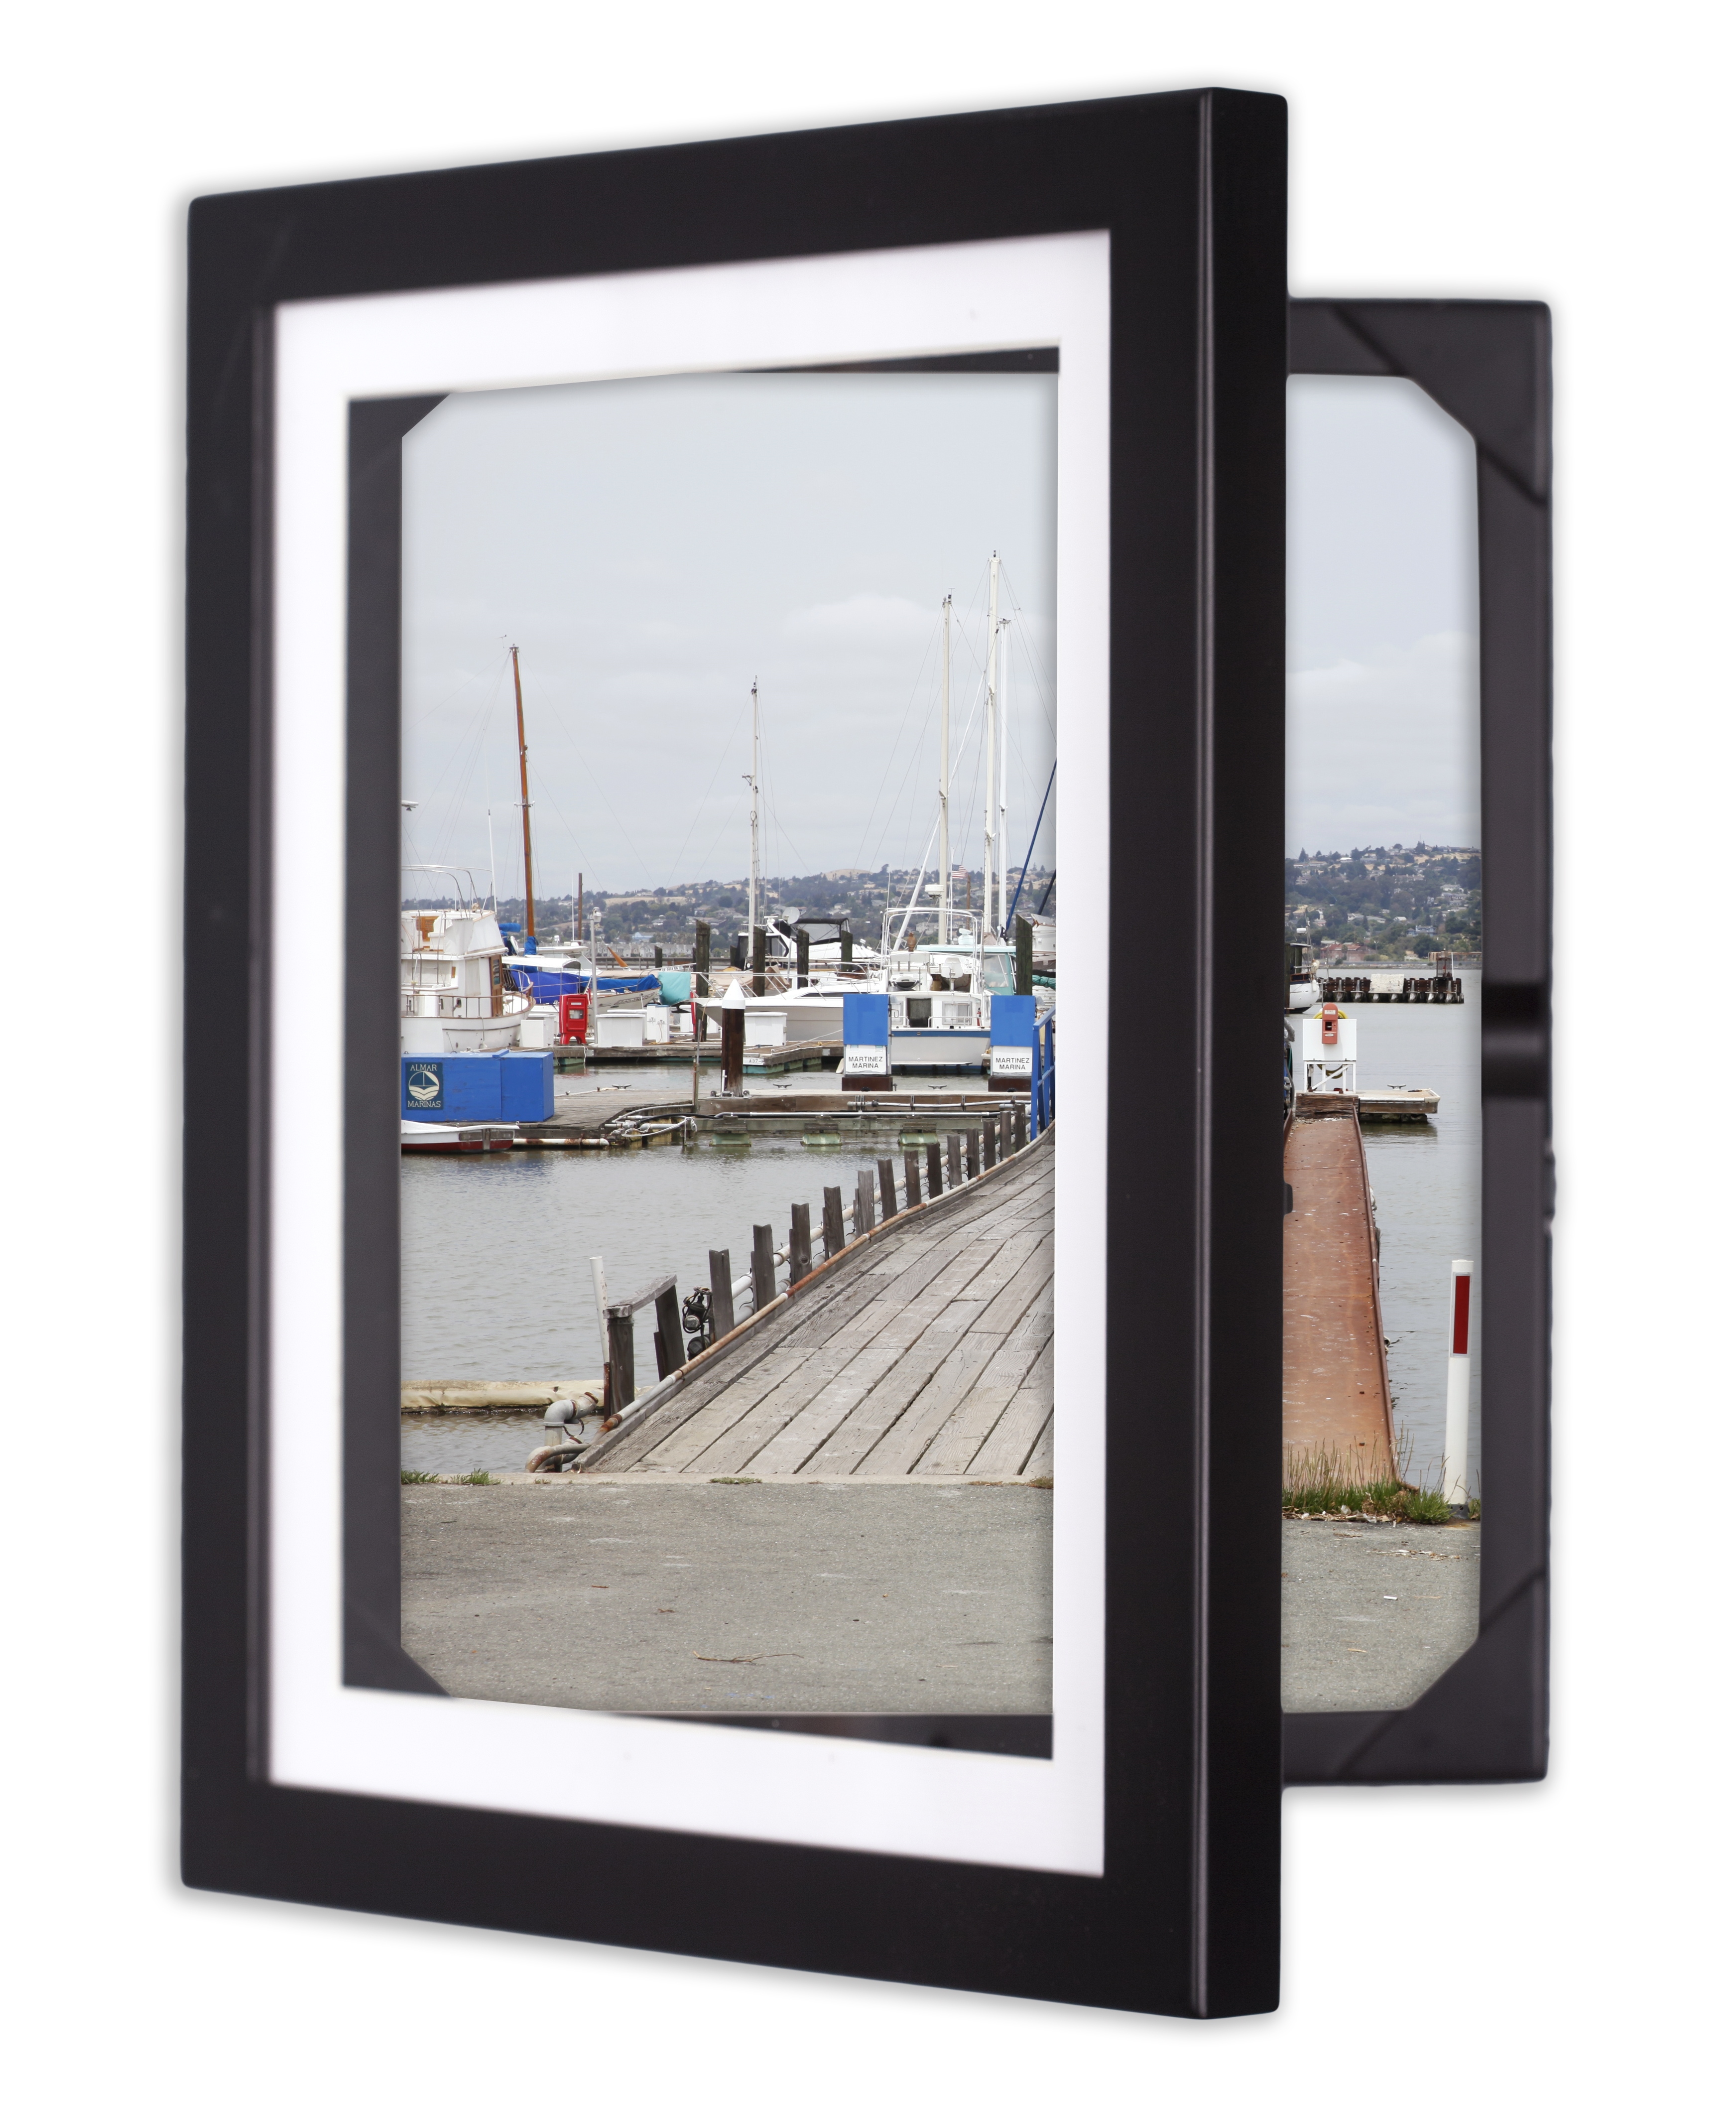 Dynamic Duo - 1 frame for either 8x10 / 5x7 photos